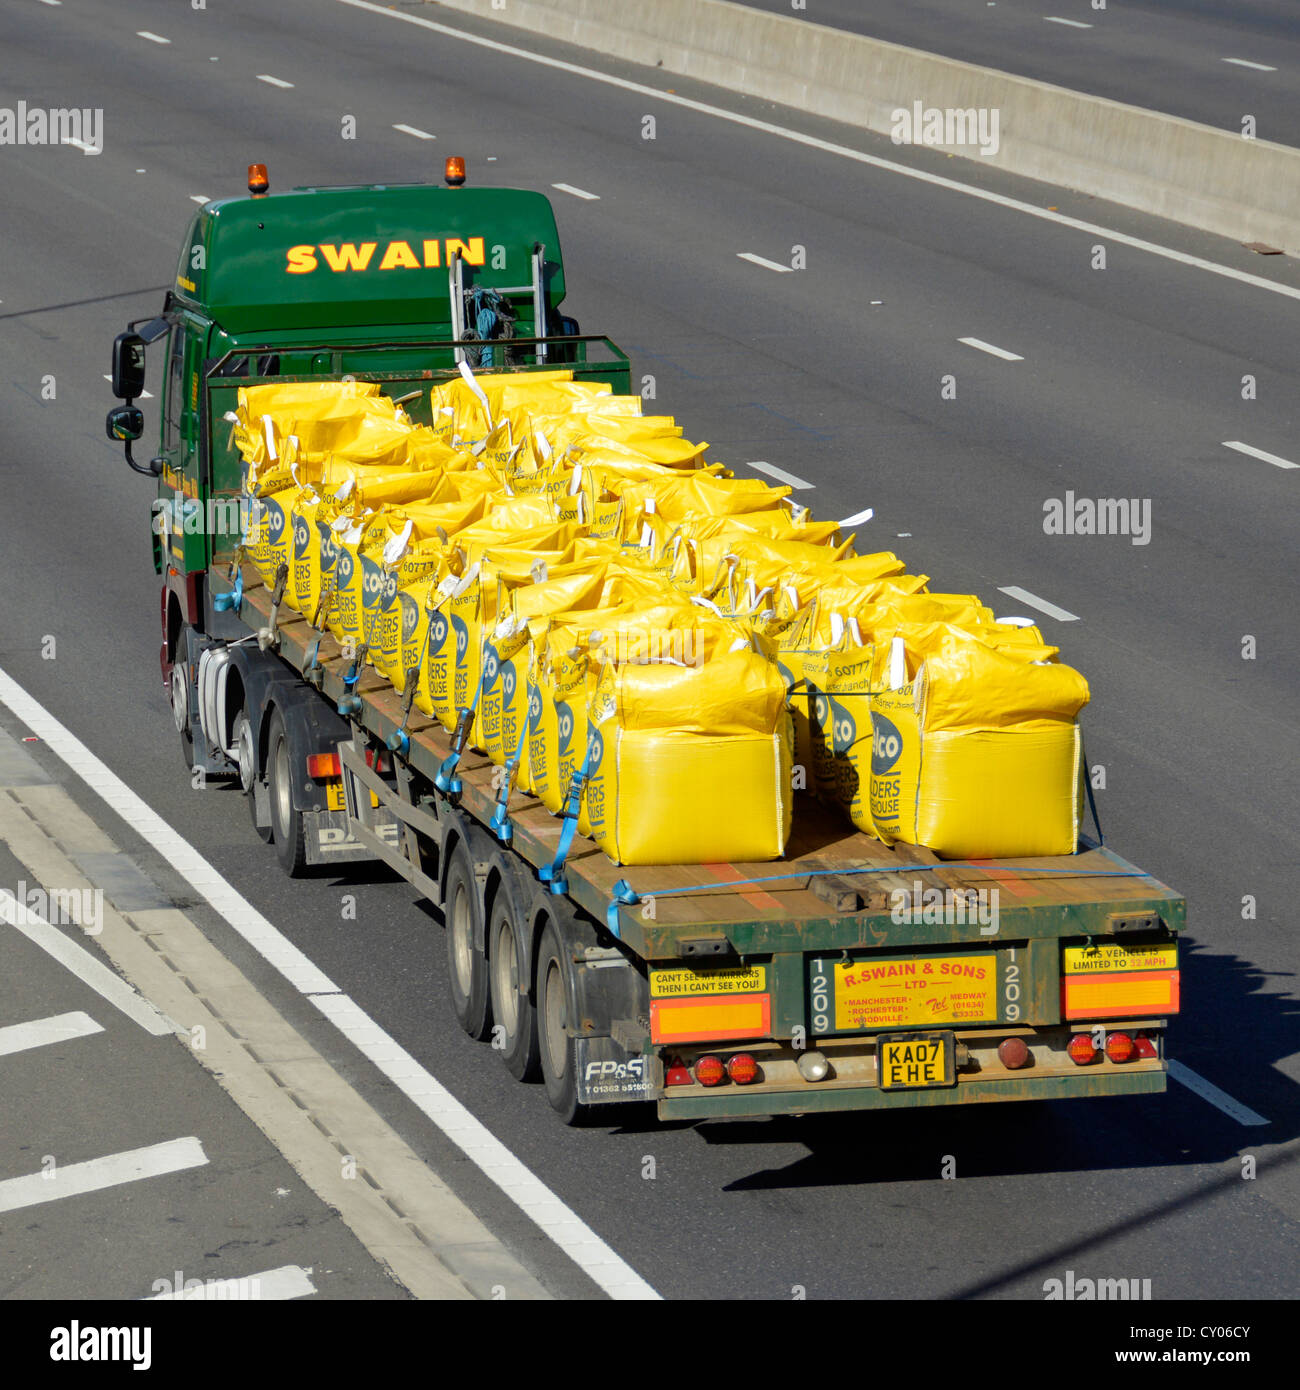 Articulated lorry on motorway loaded with large bags of loose bulk materials - Stock Image